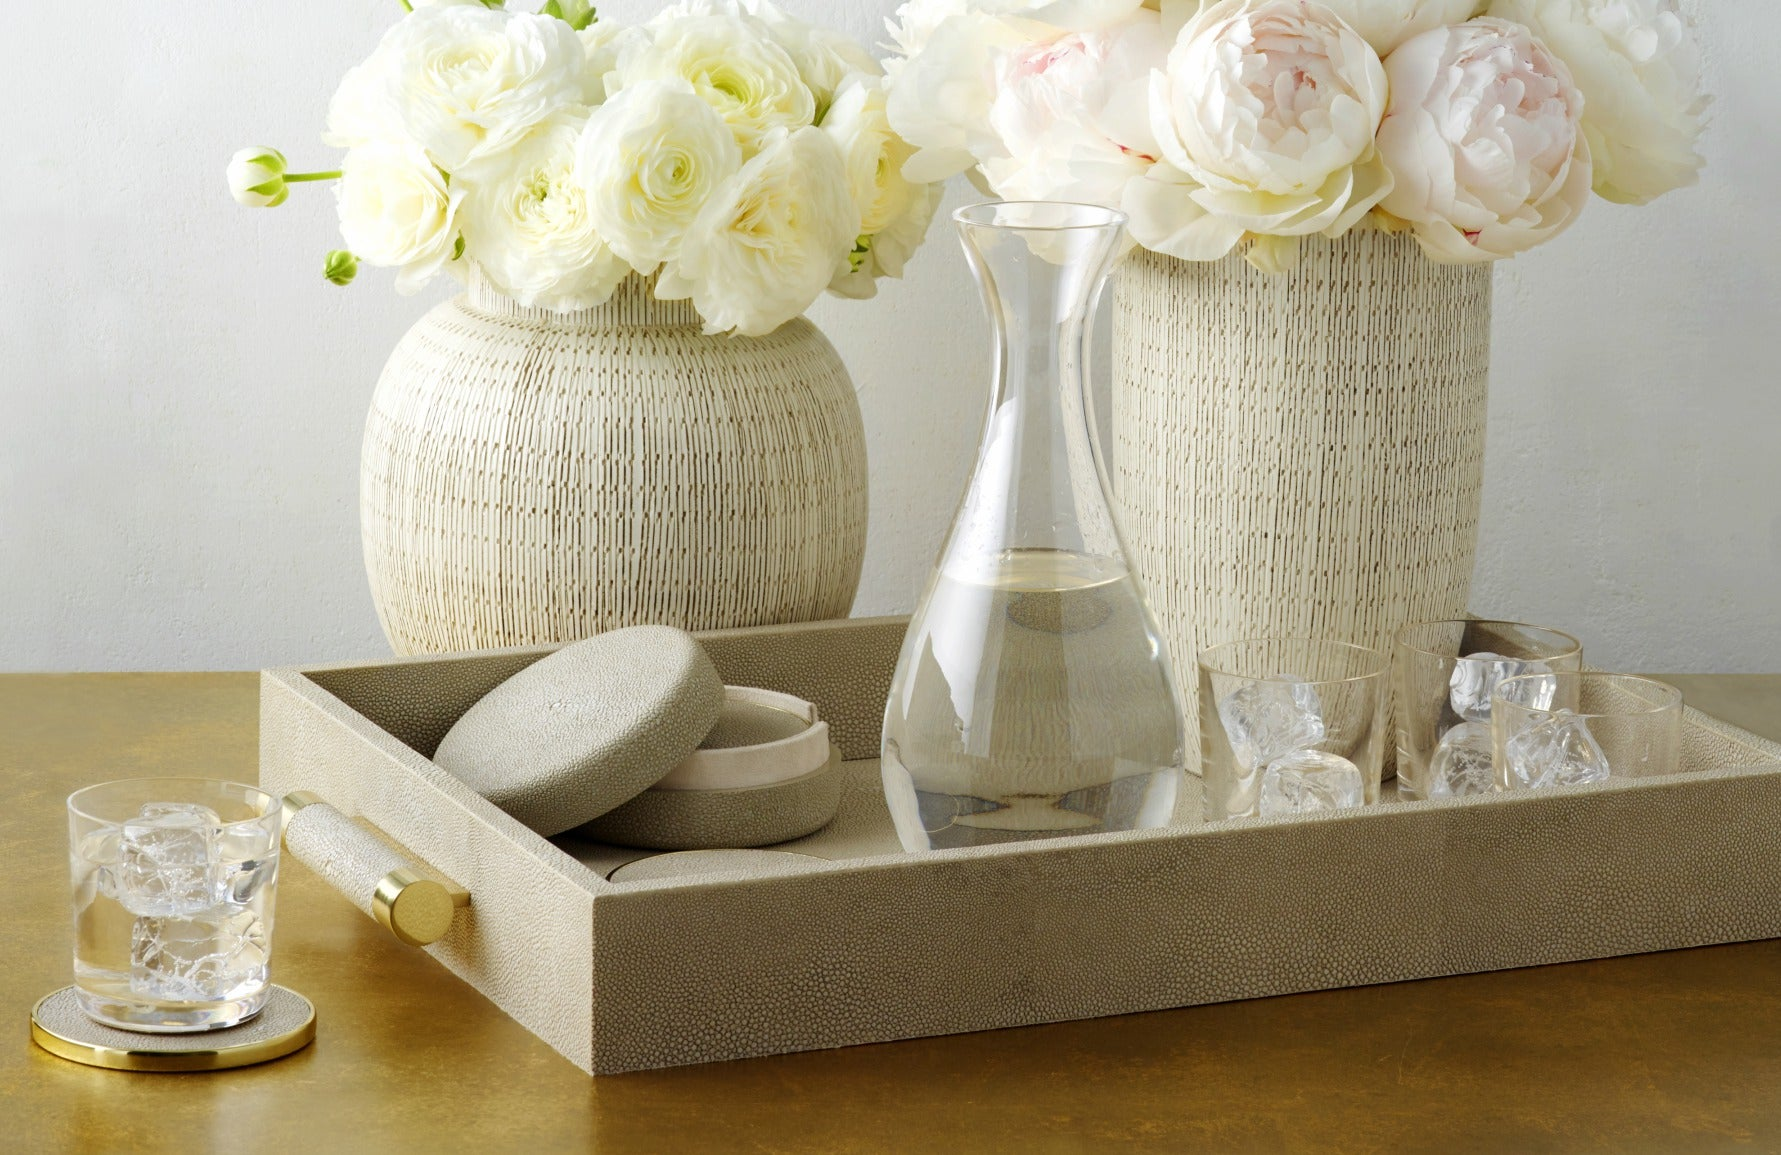 How To Host The Perfect Easter Lunch | AERIN shagreen decor | LuxDeco.com